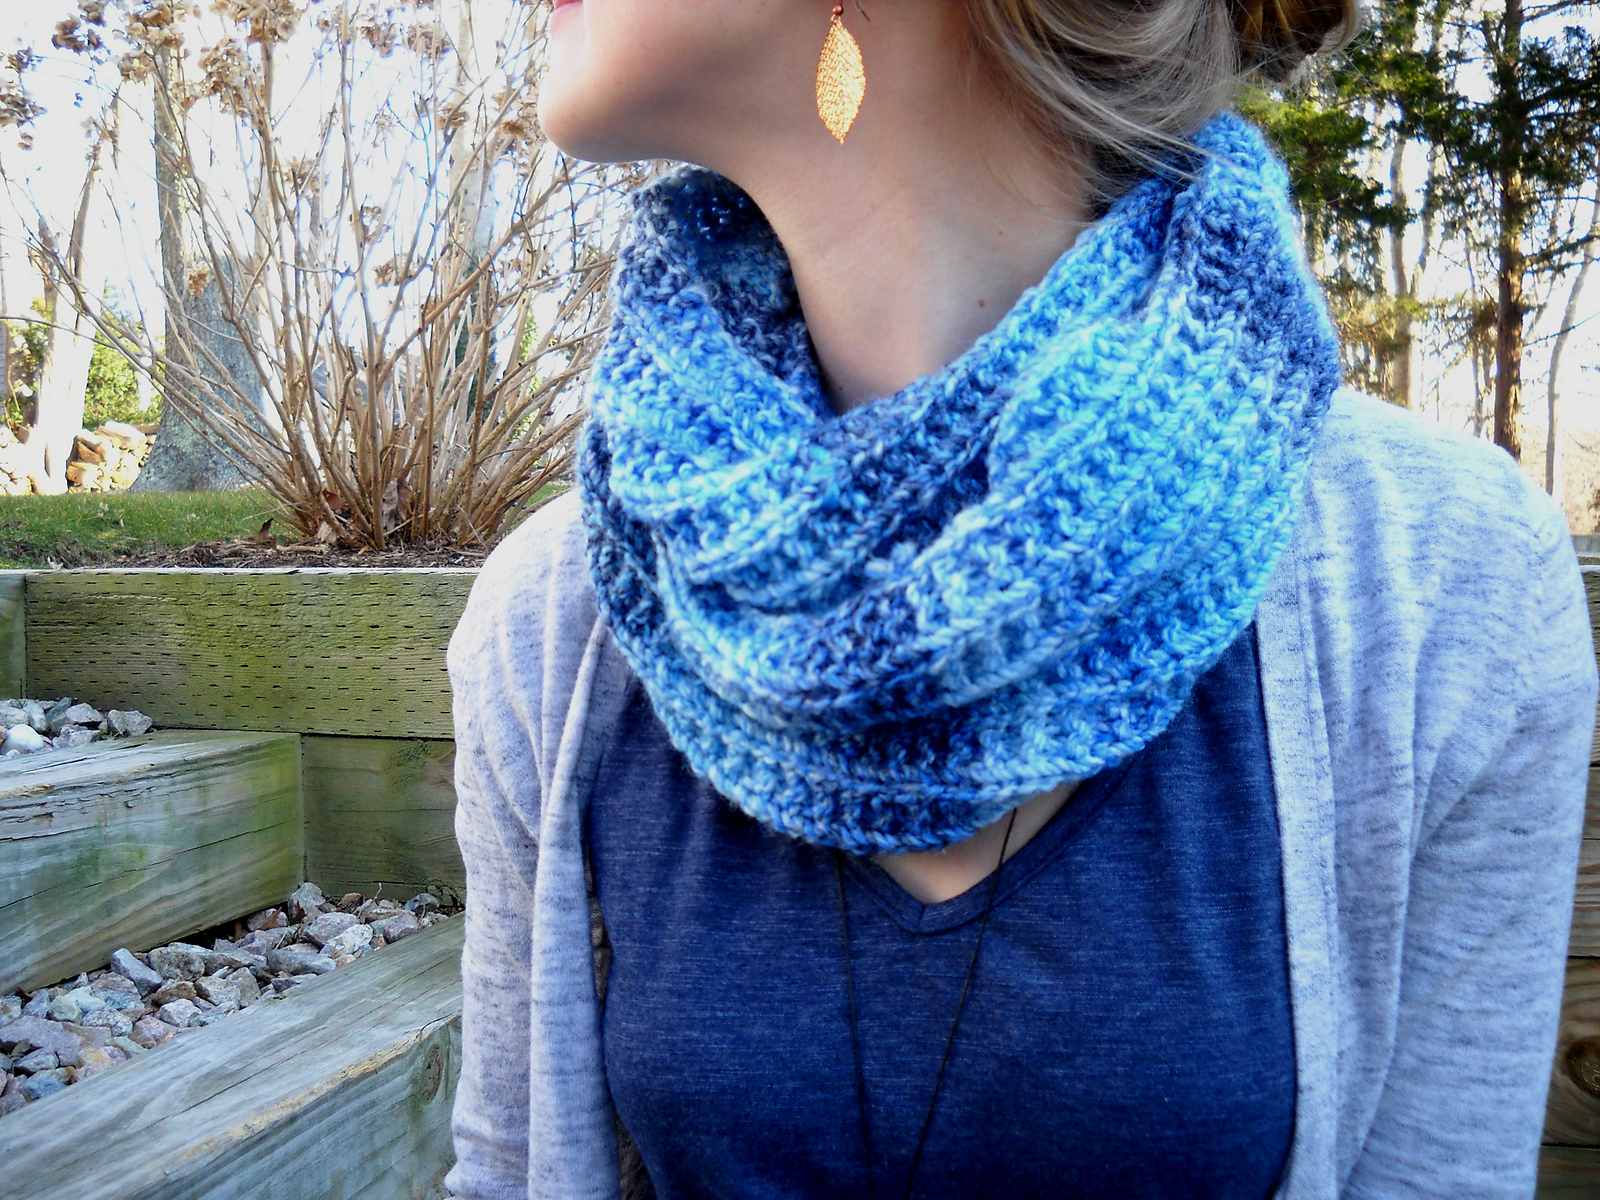 Knitting Scarf Patterns Infinity Scarf : Wiseknits: blues infinity scarf free pattern!